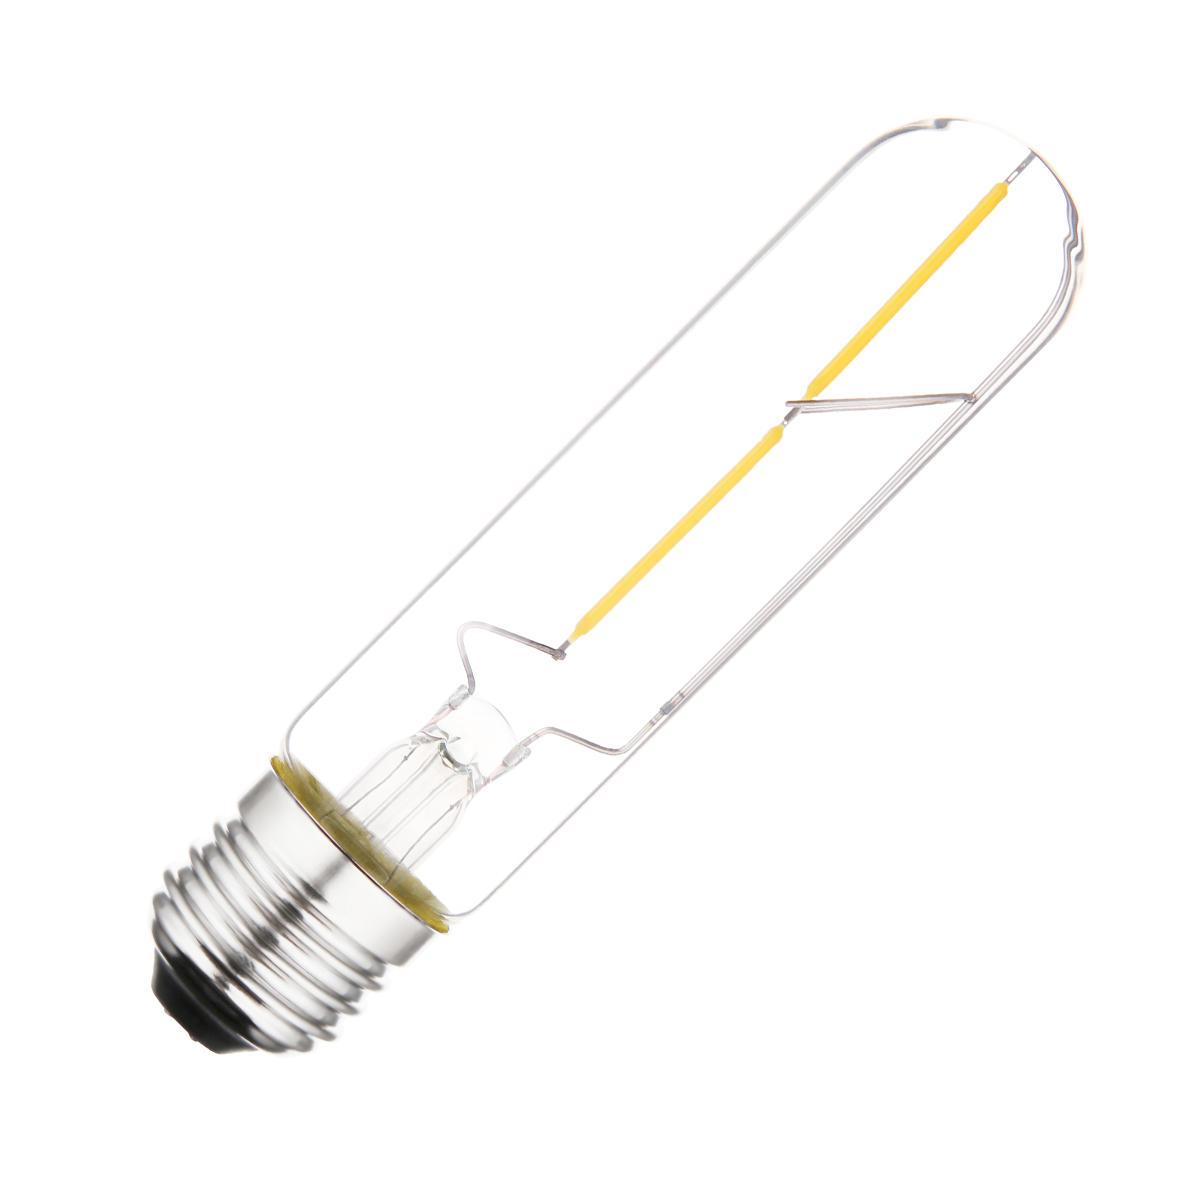 T10 E27 1 8w Warm White 200lm Cob Led Bulb Filament Retro